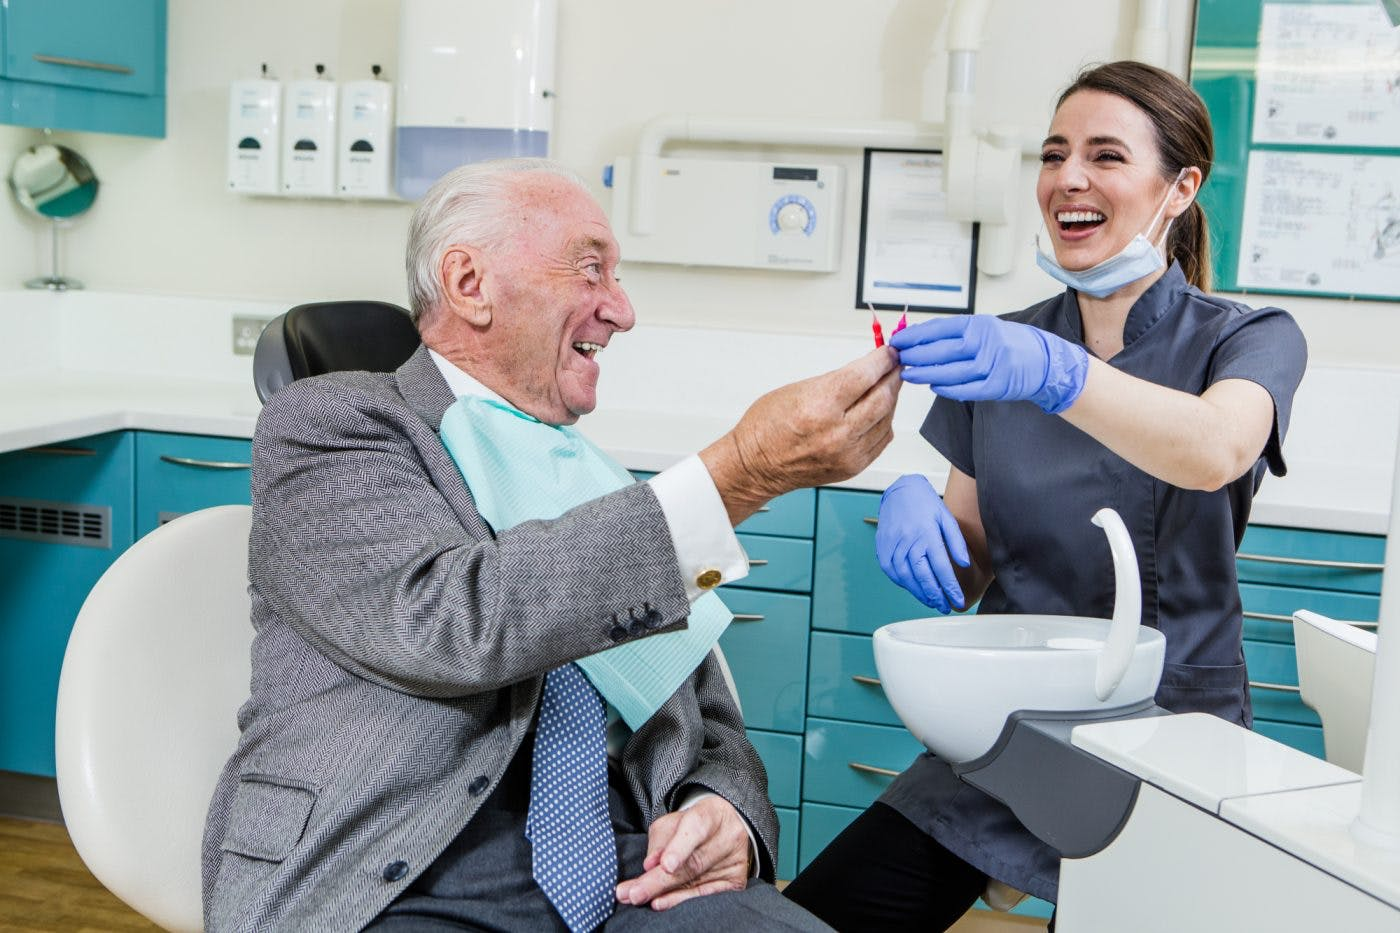 What You Need To Know Before Your Dental Implants Procedure